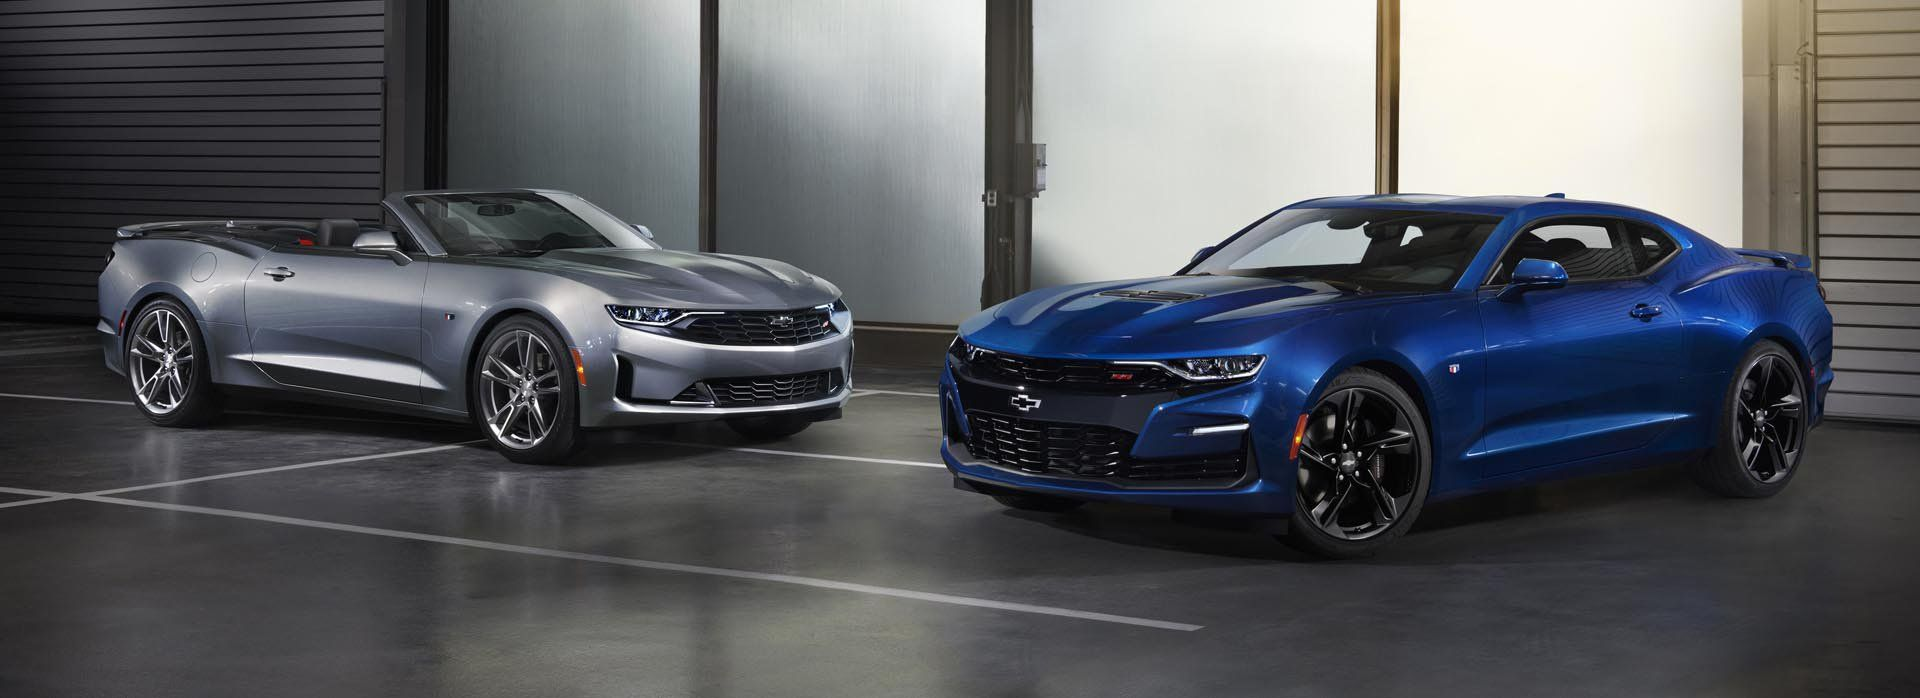 Now You Can Save Up To 3,000 On A New 2019 Chevy Camaro